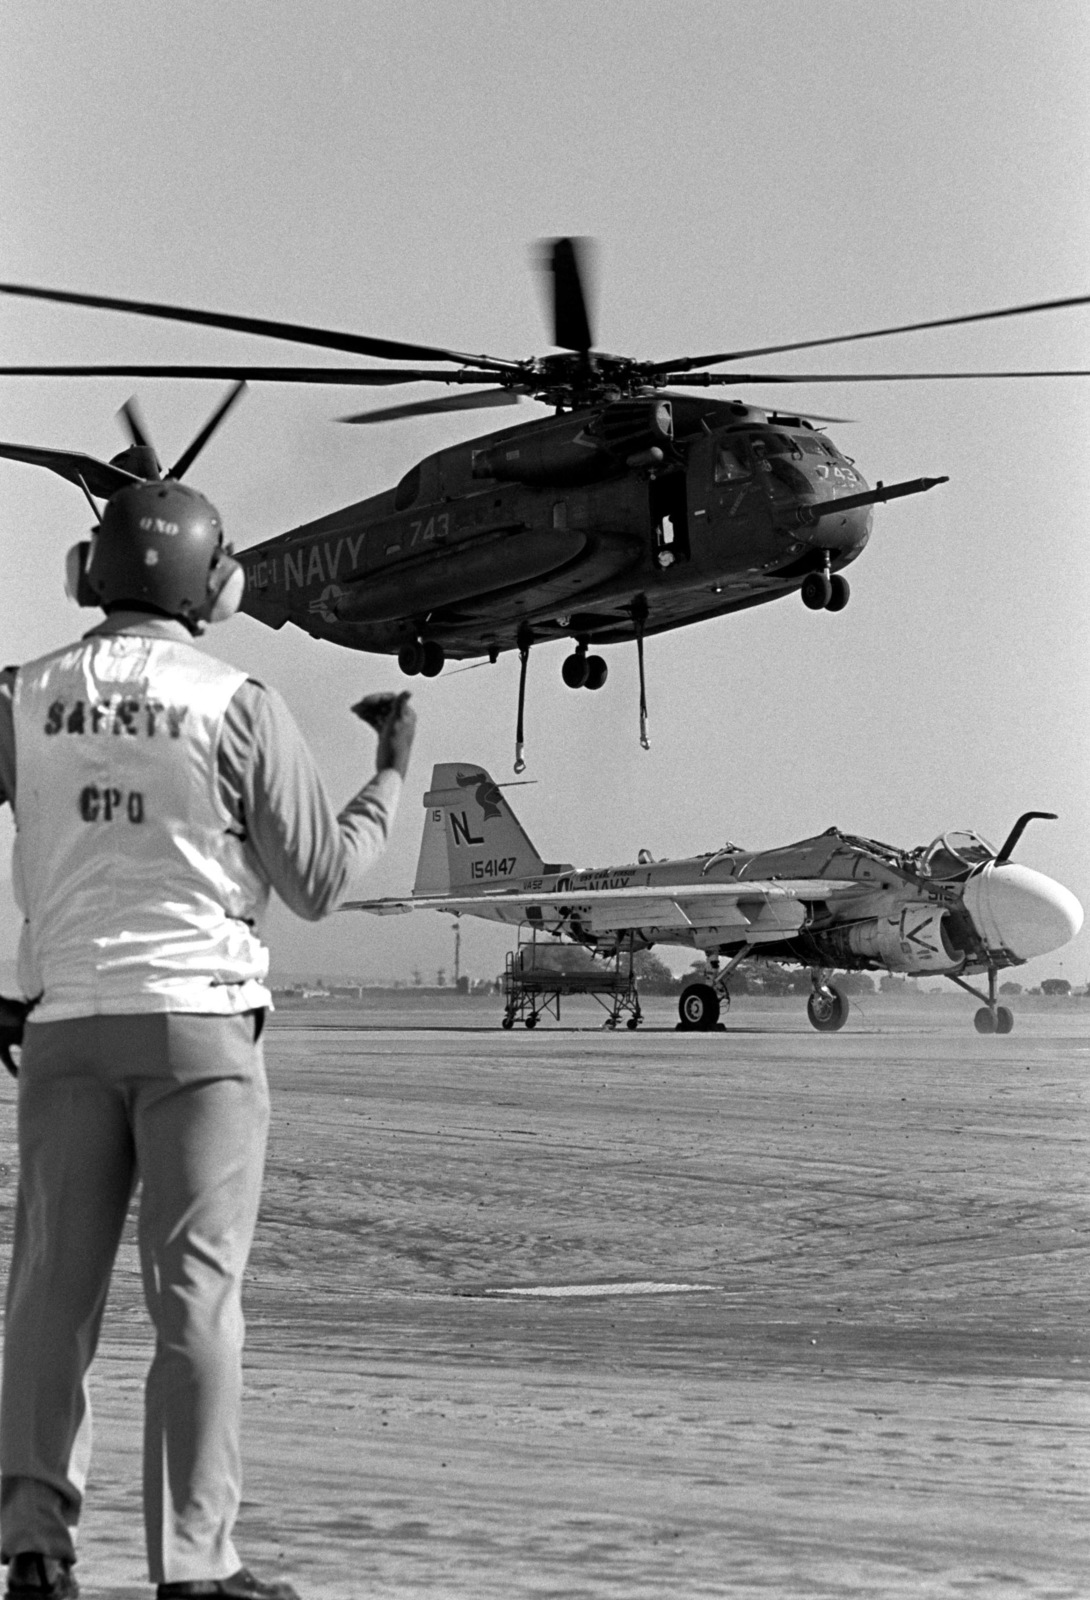 A chief petty officer watches as a Helicopter Combat Support Squadron 1 (HC-1) CH-53E Super Stallion helicopter moves into position over a damaged Attack Squadron 52 (VA-52) A-6E Intruder aircraft. The helicopter will carry the aircraft to the Naval Air Rework Facility, Alameda, California, for repairs. The Intruder was damaged when a hydraulic failure forced it to land with its landing gear retracted